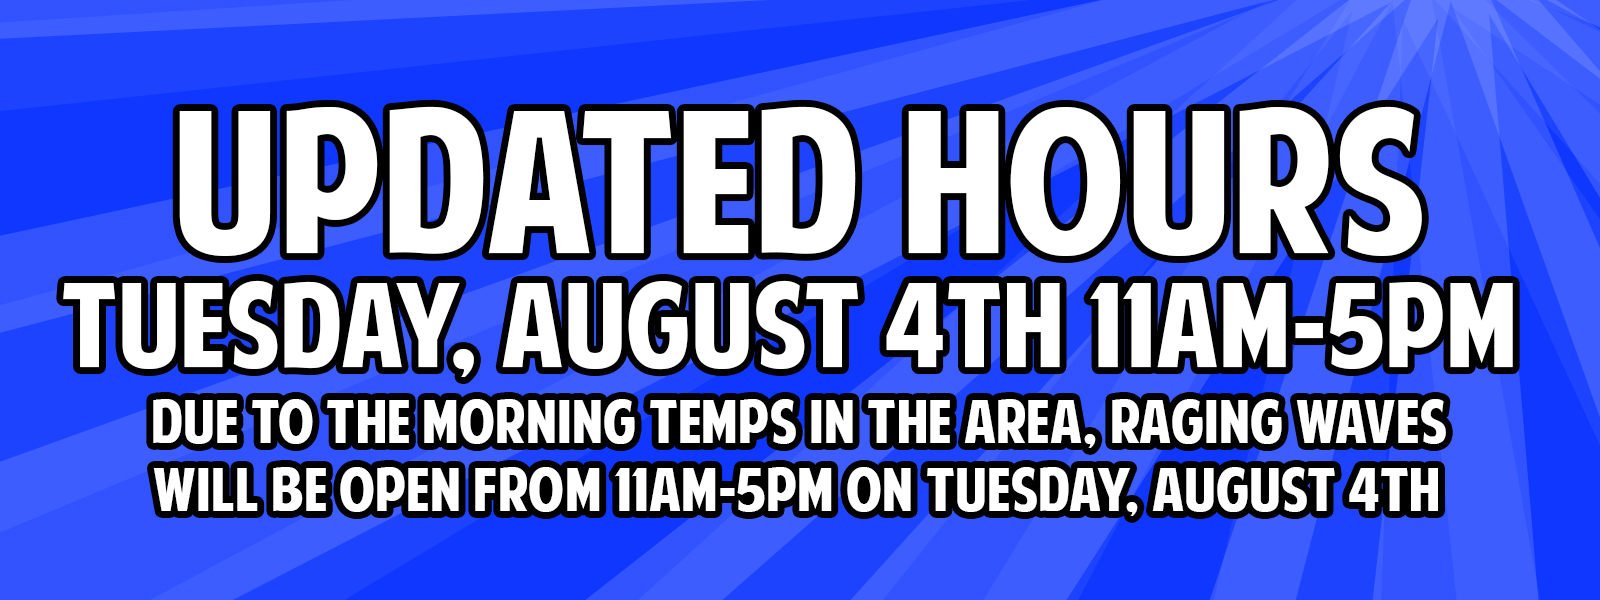 updated hours 8-3-20